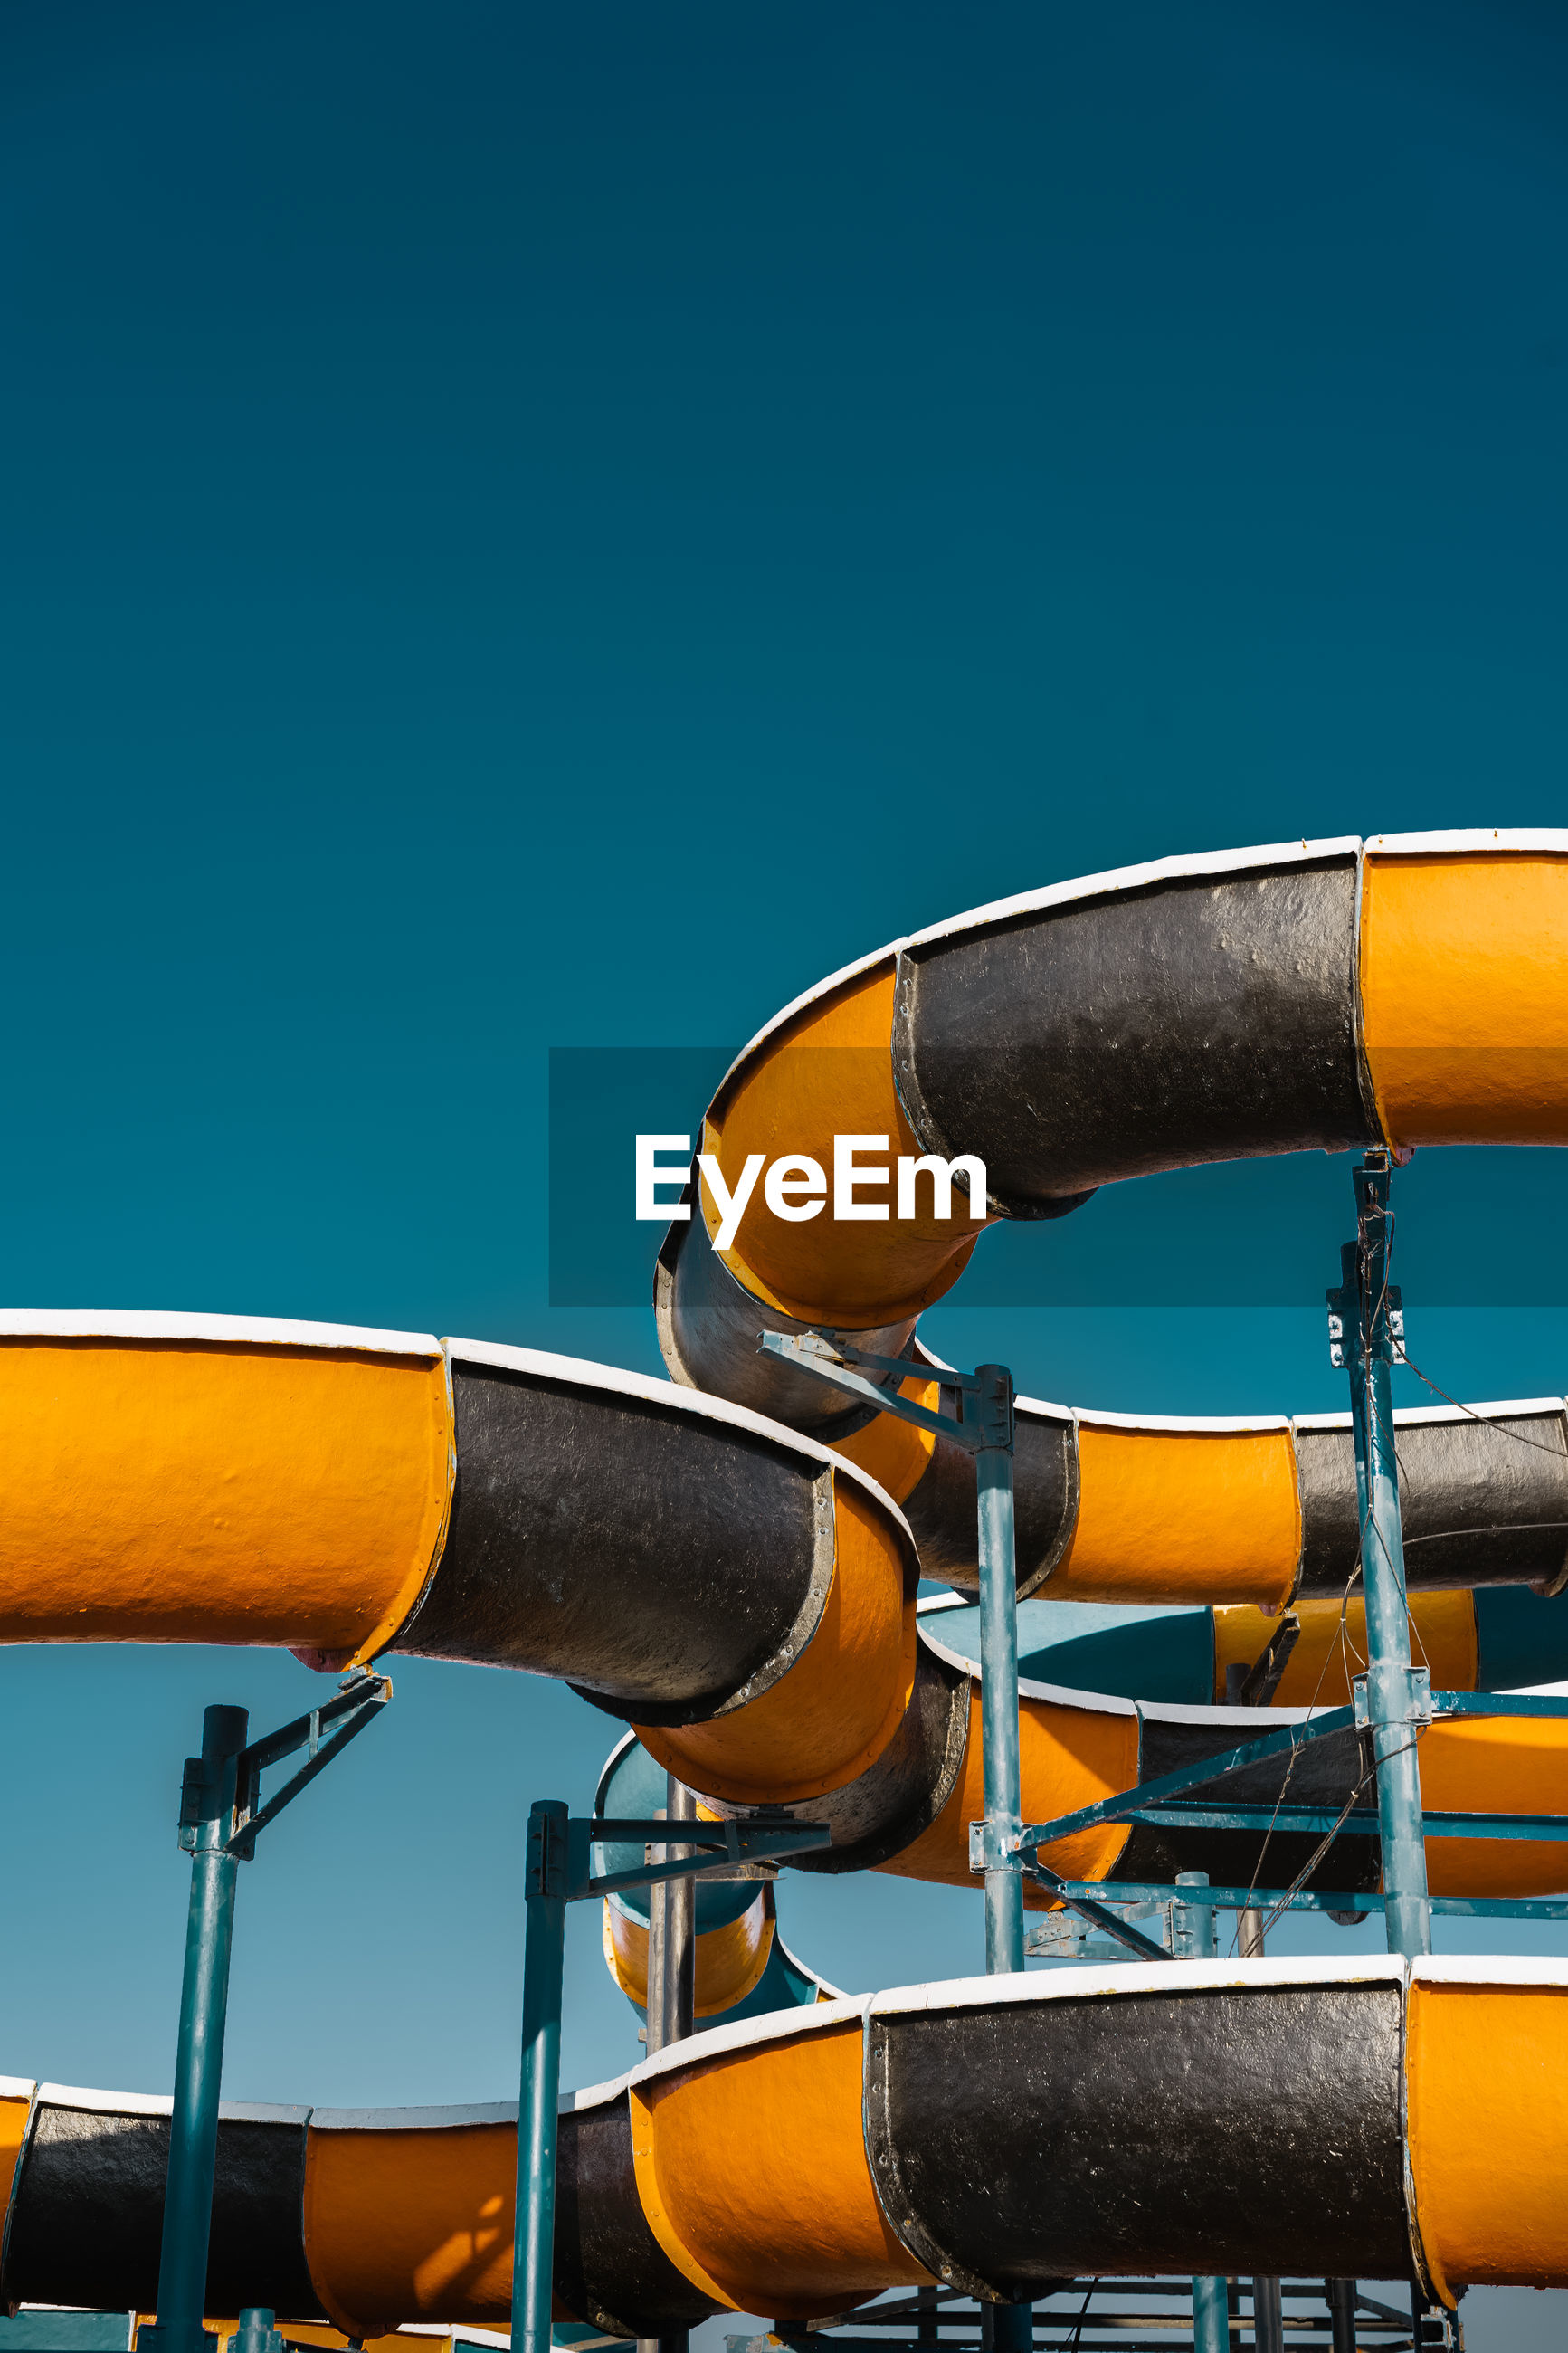 Low angle view of water slide against clear sky at amusement park